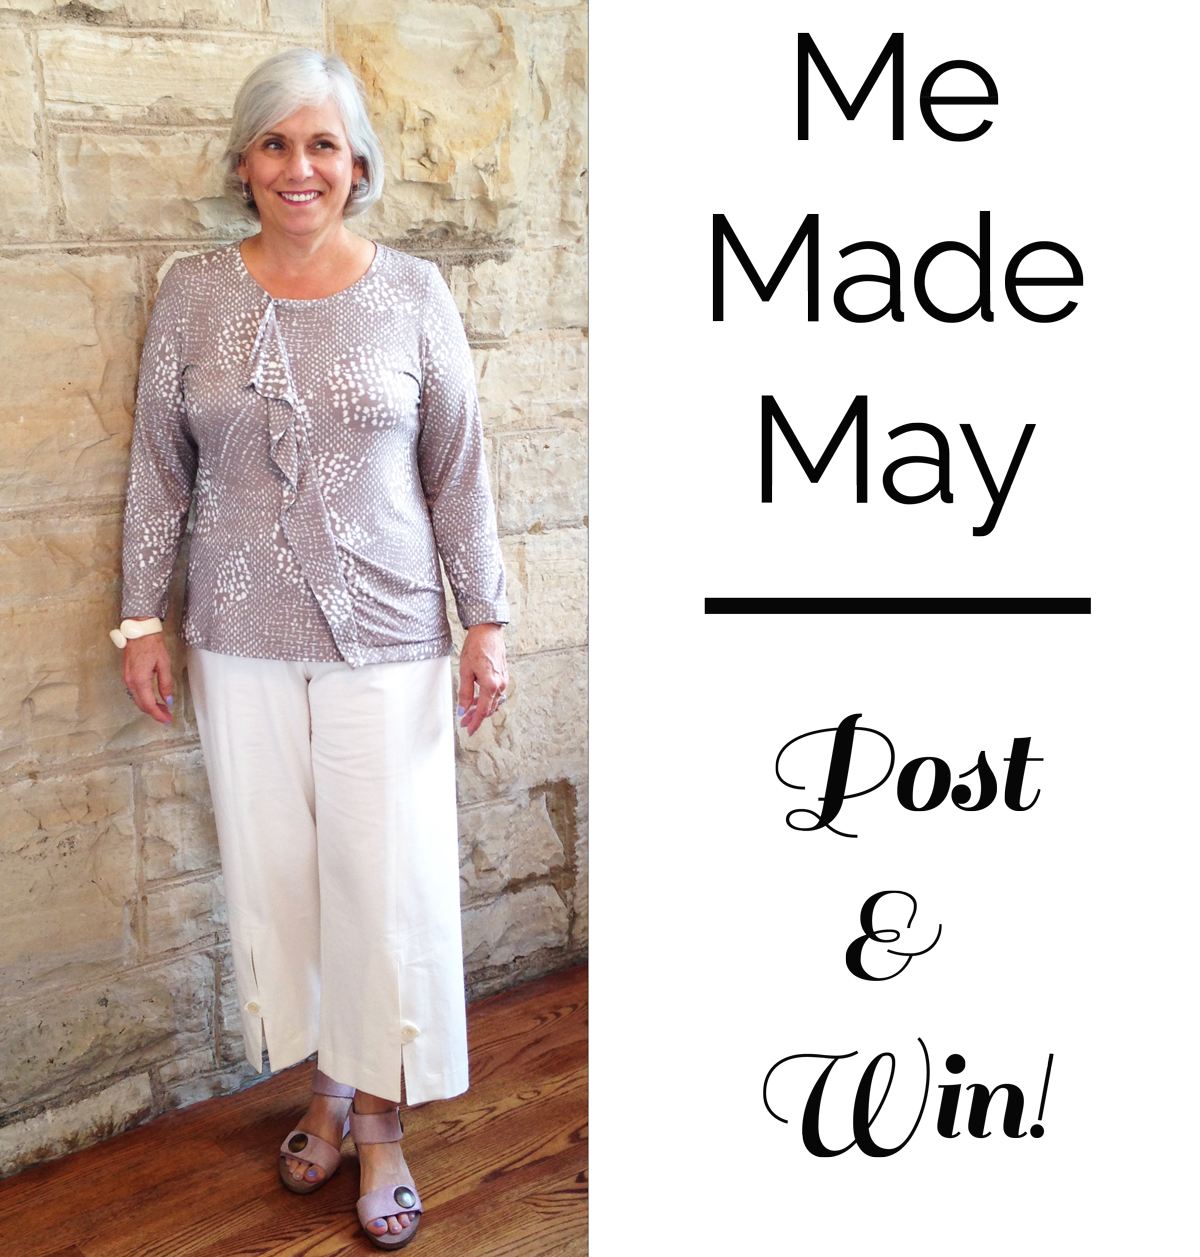 Me-Made May Contest Starts Now!